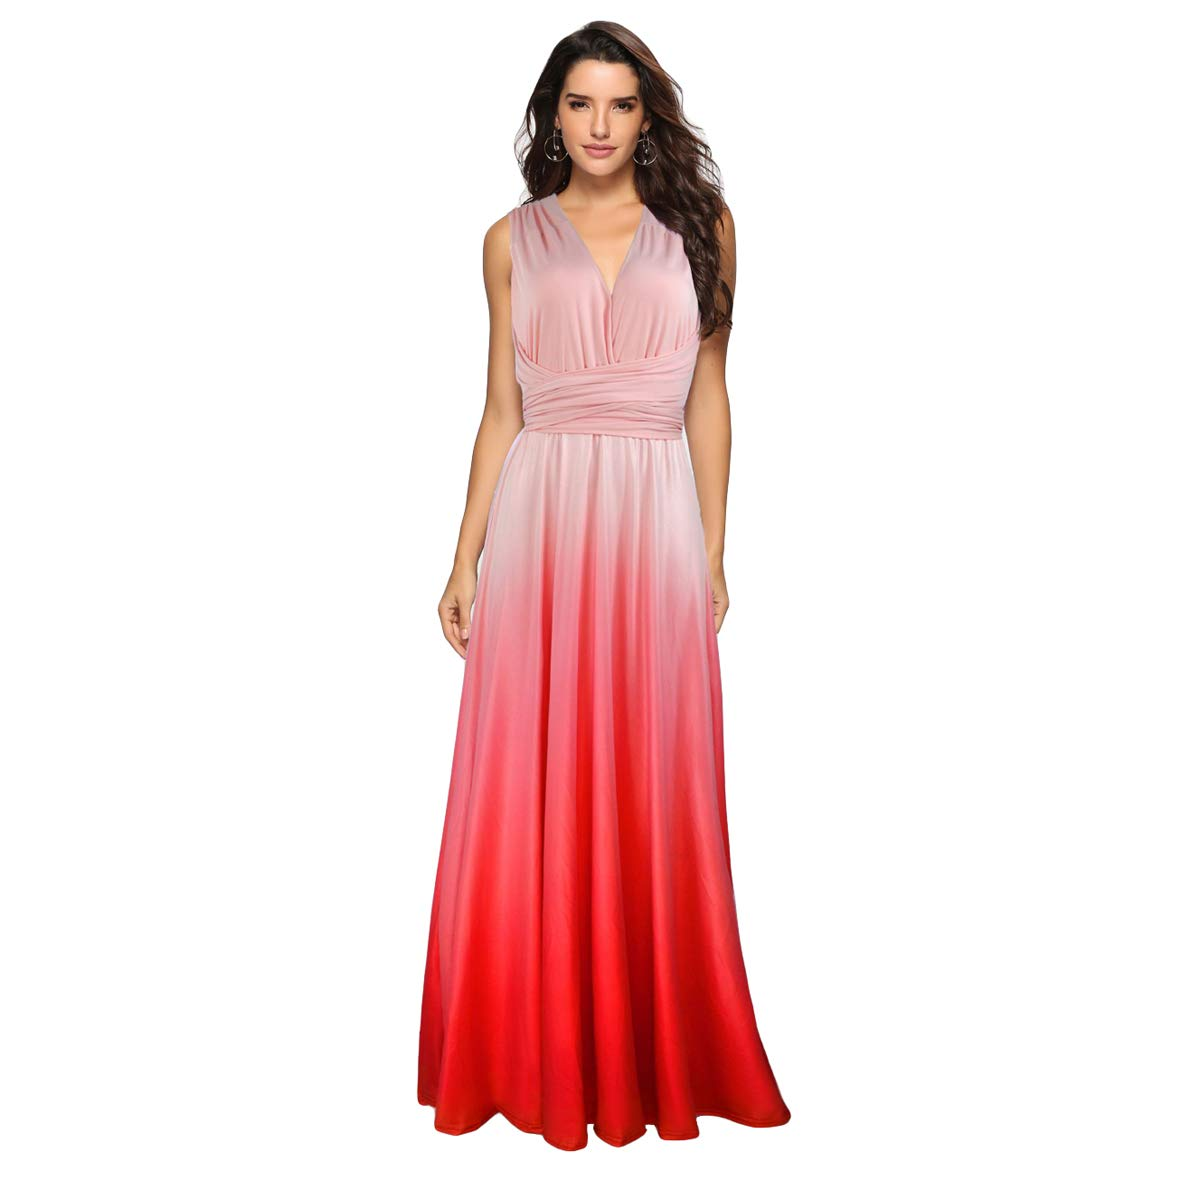 d76f3e452ef0 Women Evening Long Maxi Gradient Ombre Dress Convertible Transformer  Wedding Party Cocktail Homecoming Gown at Amazon Women's Clothing store: